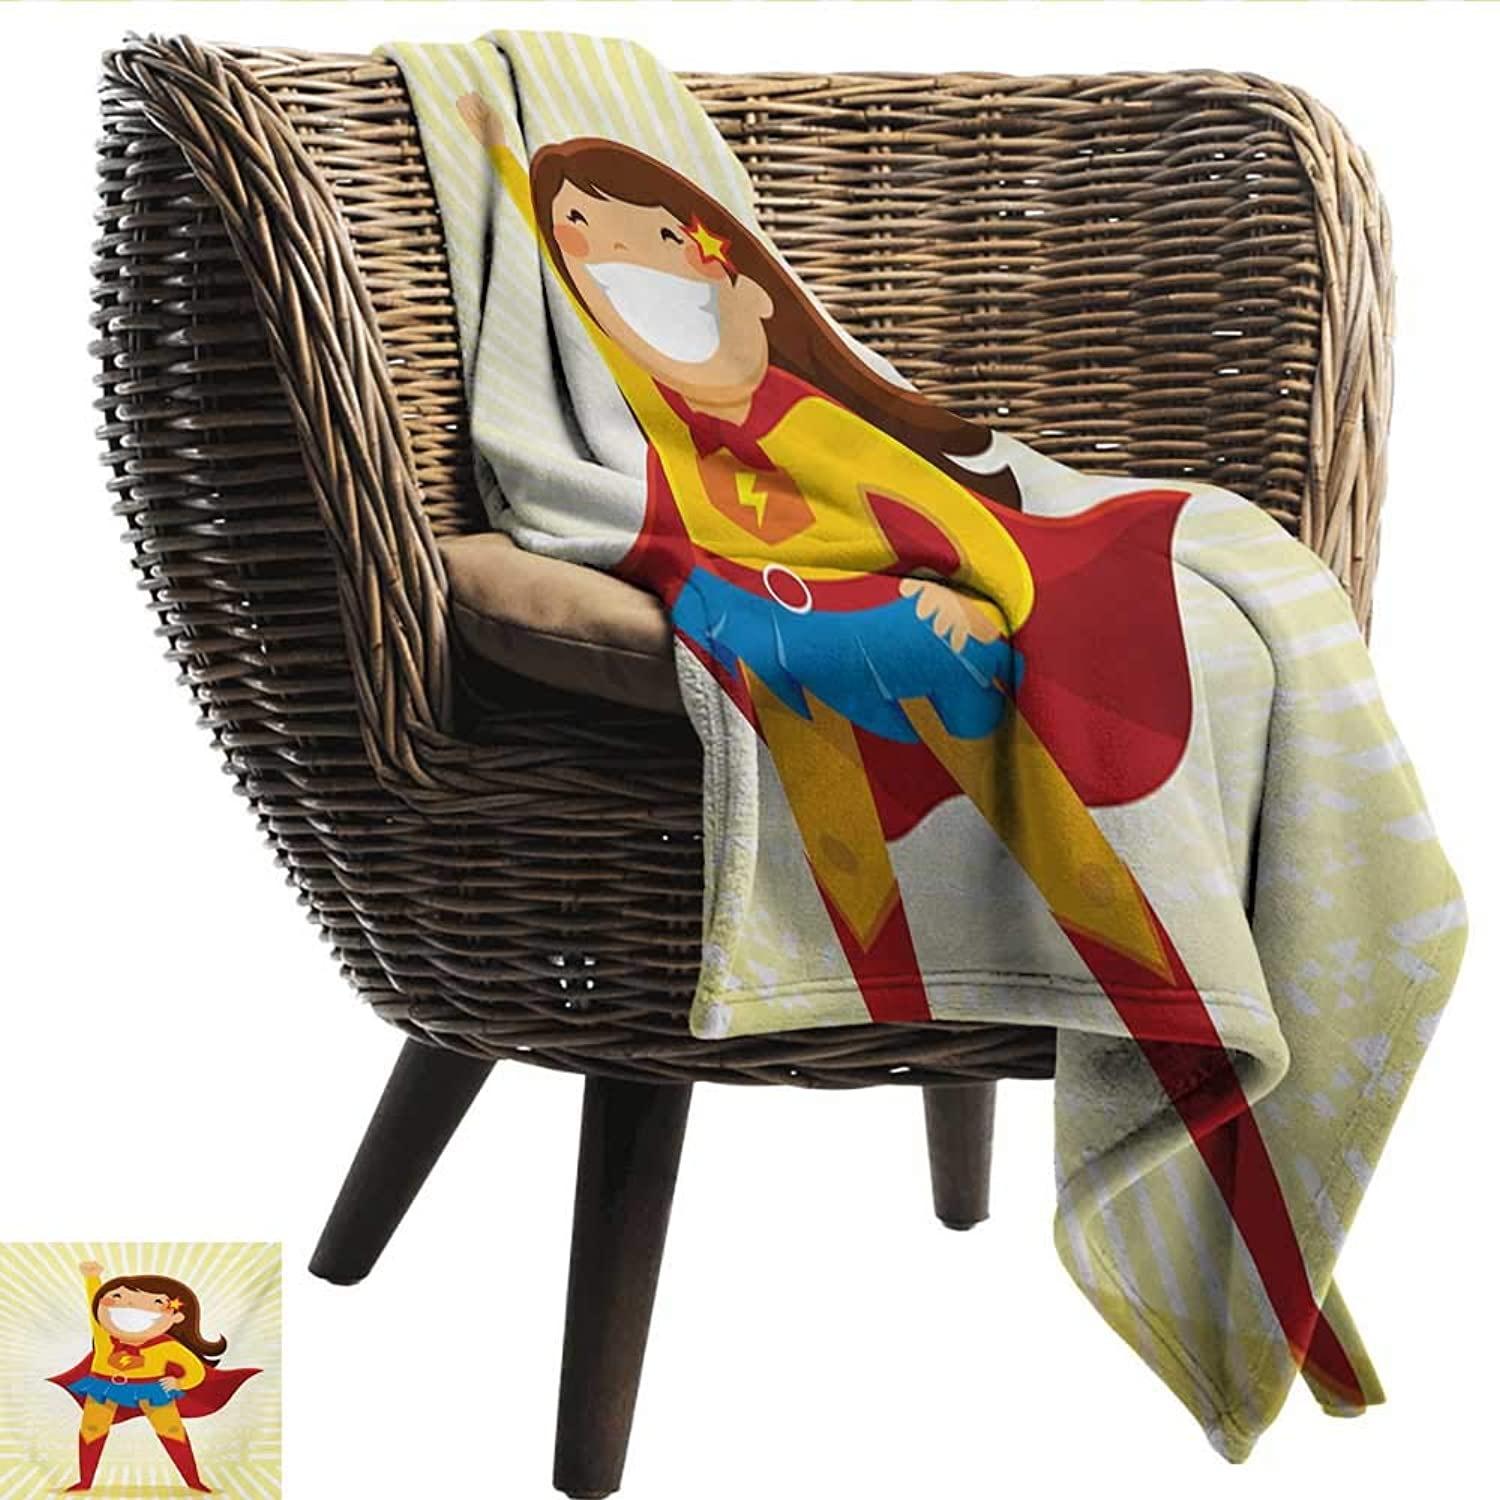 Digital Printing Blanket Superhero Courageous Little Girl with a Big Smile in Costume Standing in a Heroic Position Lightweight All-Season Blanket W60 xL51 Sofa,Picnic,Camping,Beach,Everyday use